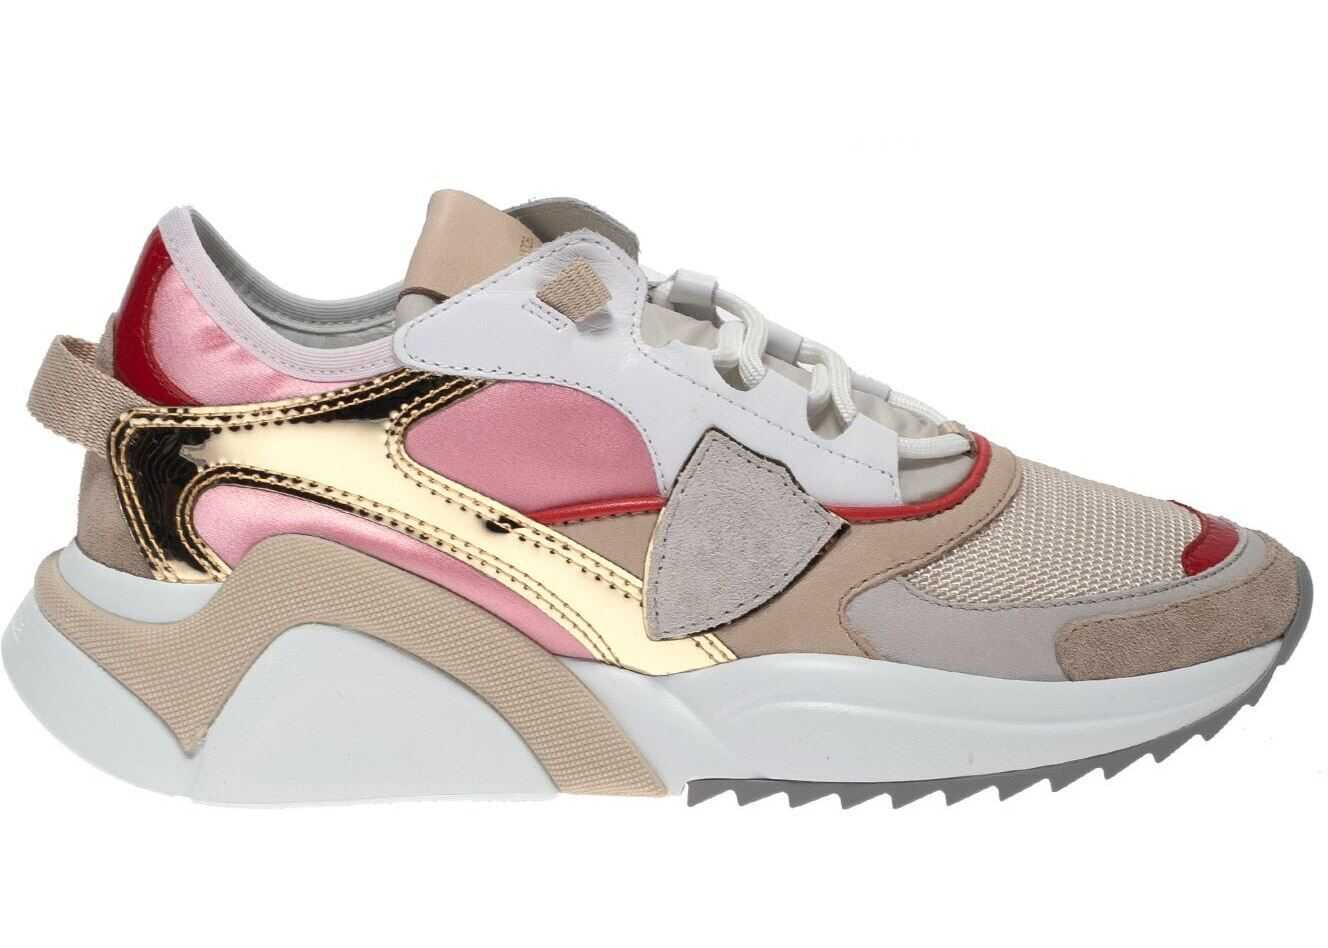 Philippe Model Eze Sneakers In Beige With Satin Details Beige